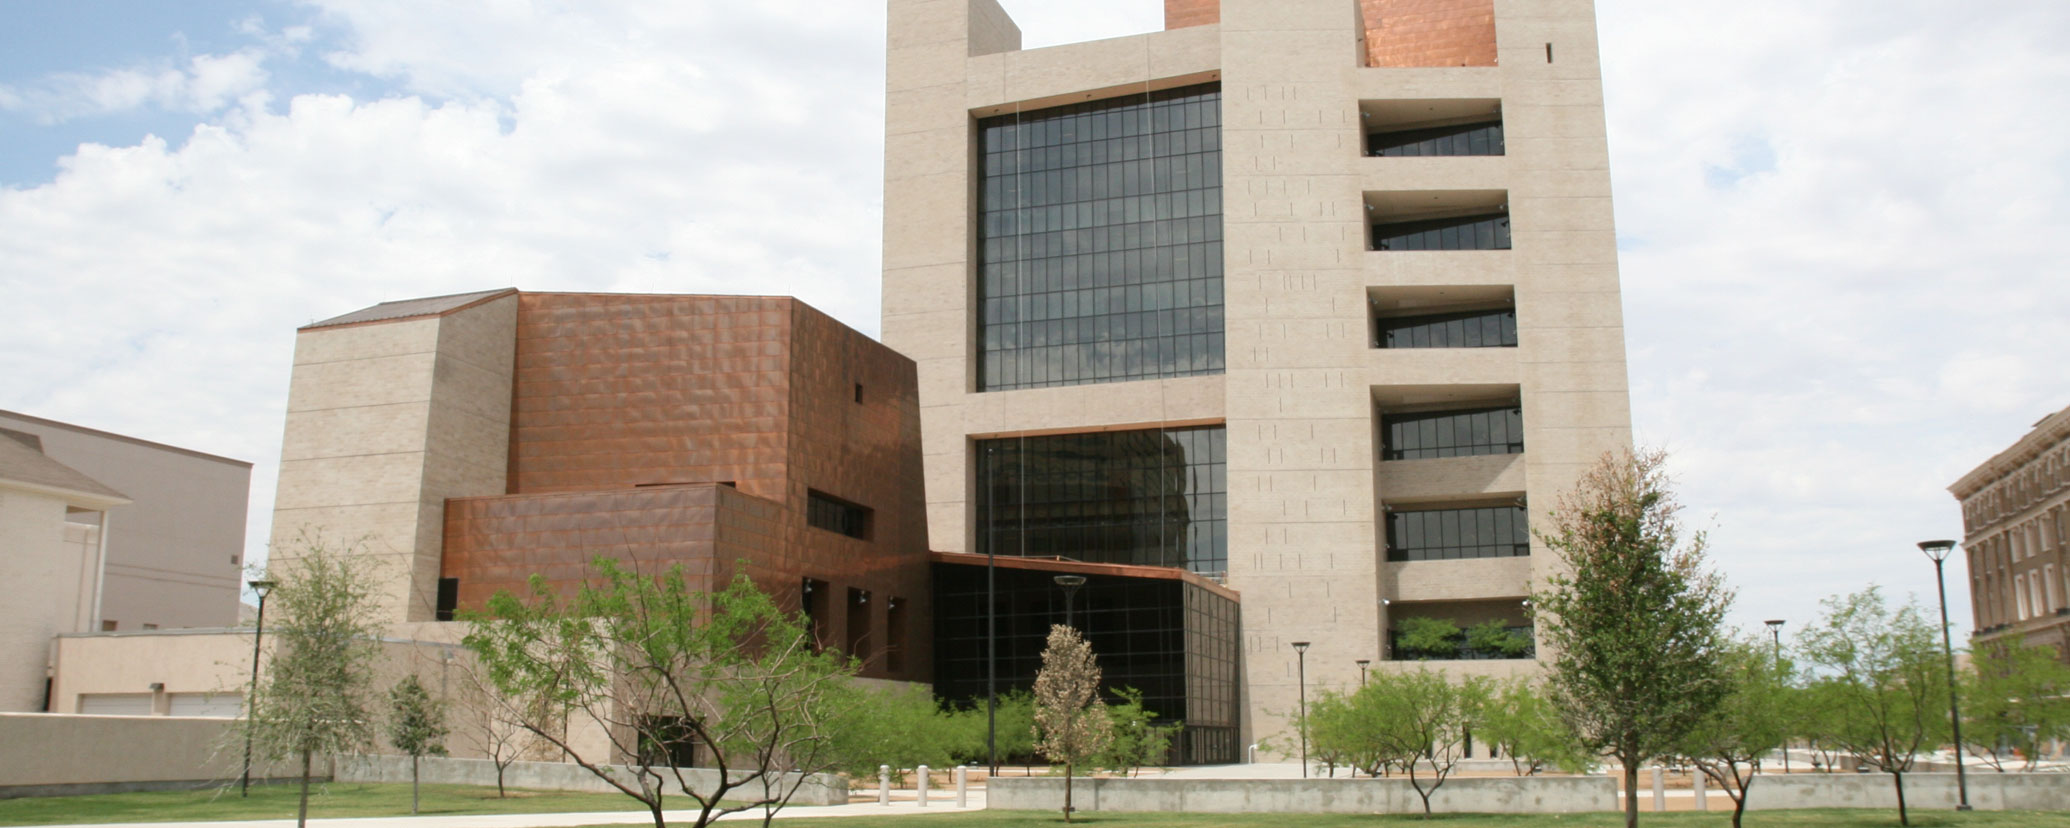 Caddell Construction- U.S. Courthouse El Paso, TX